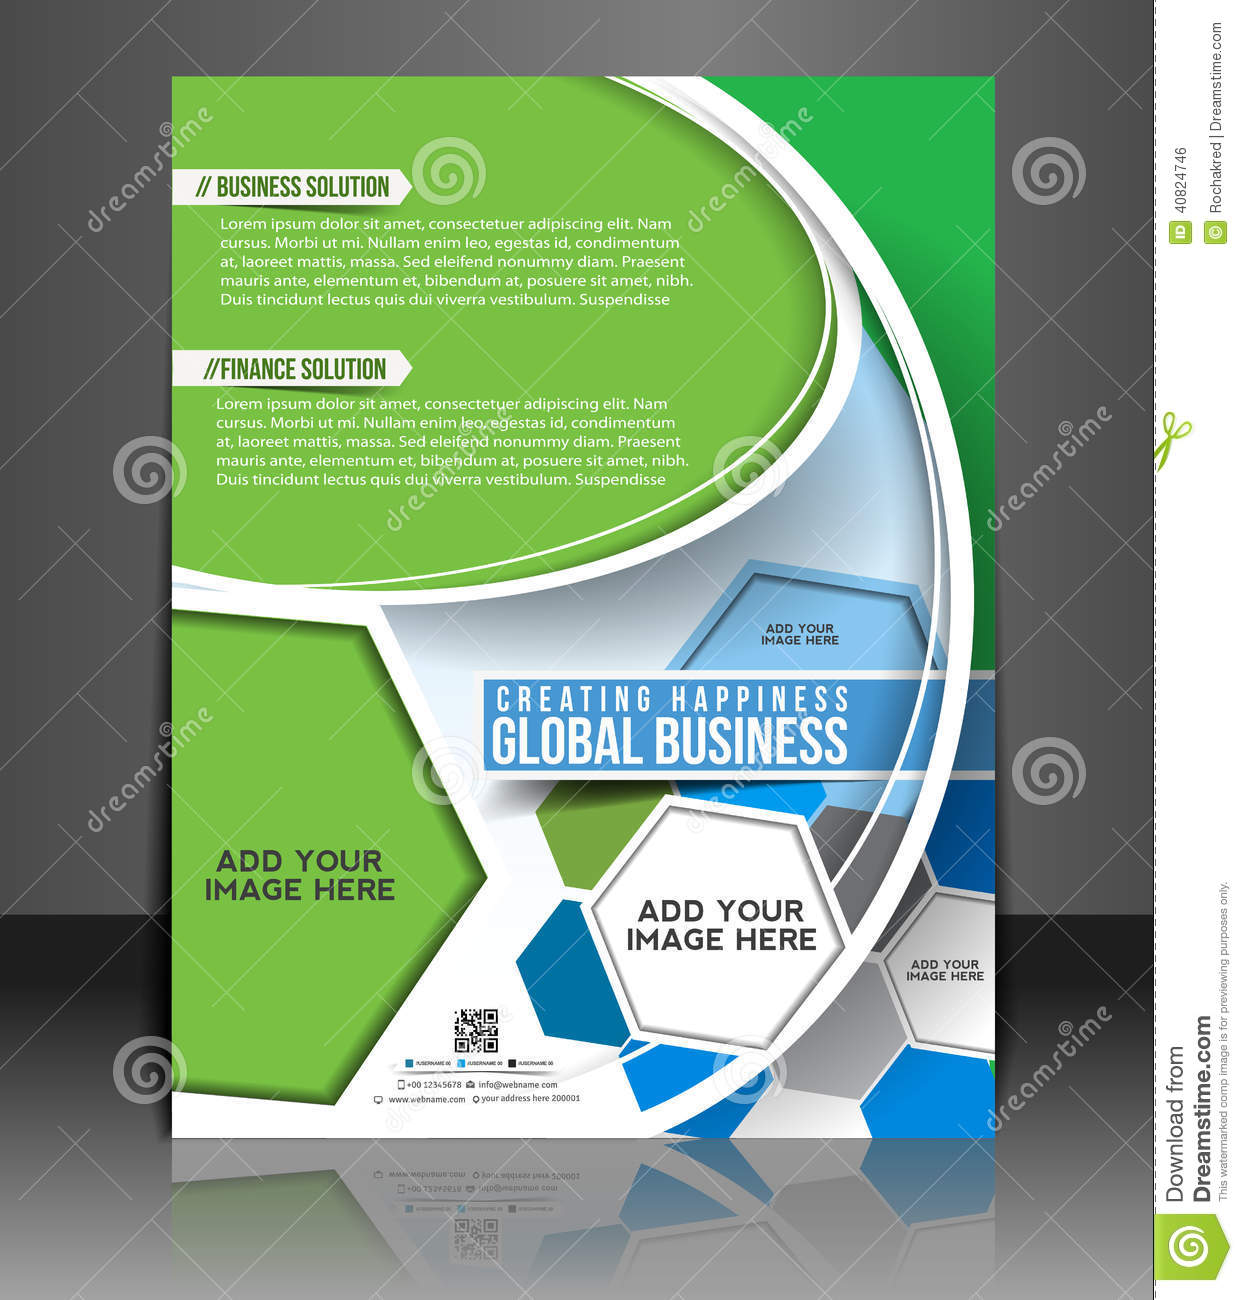 Global business flyer stock illustration image 40824746 for Global design firm